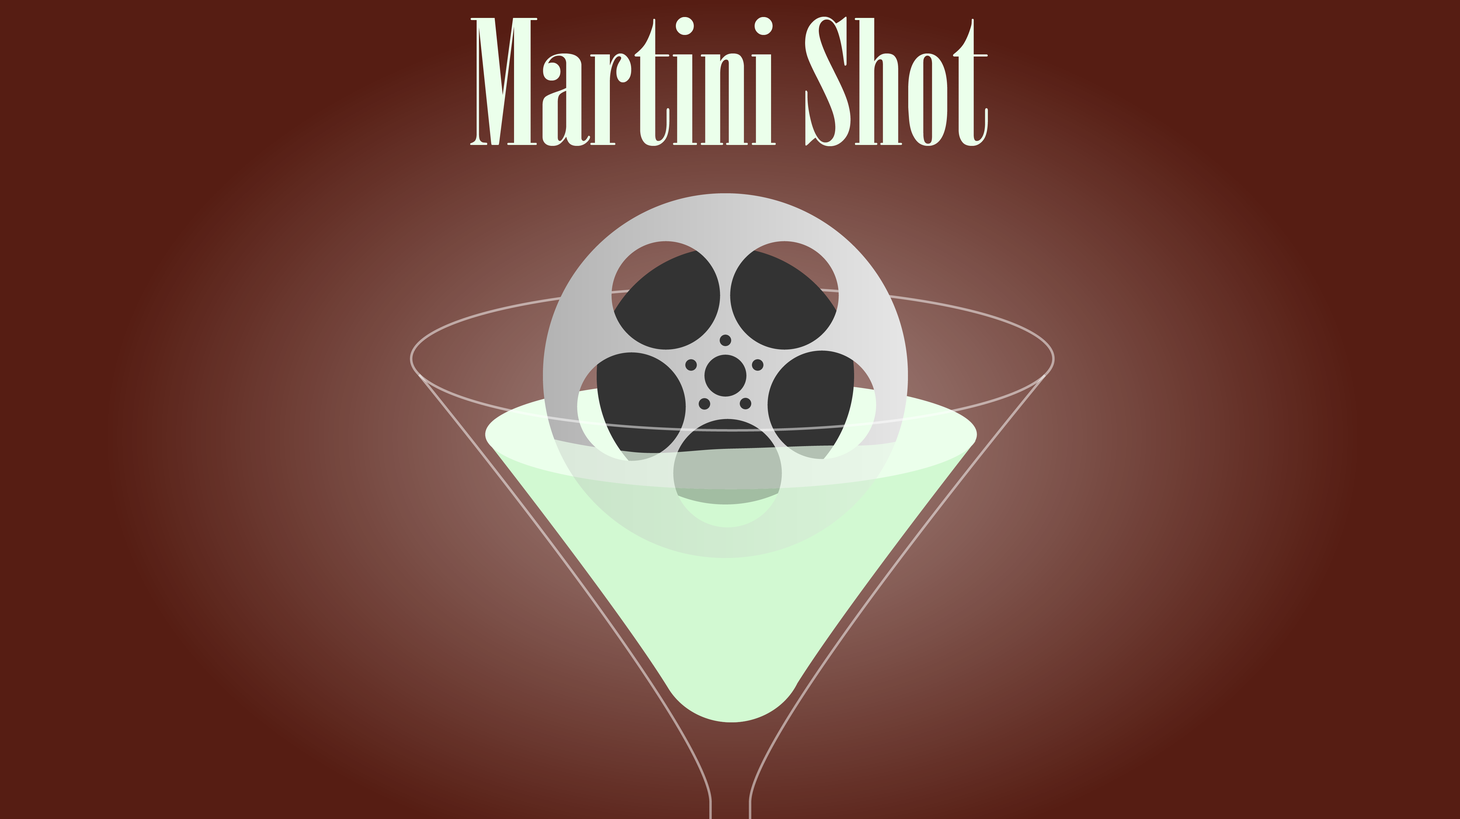 This is Rob Long and on today's Martini Shot I talk about the best way to stay enthusiastic and creative and energized in the entertainment business, and that's to have your show cancelled and need to come up with something new.